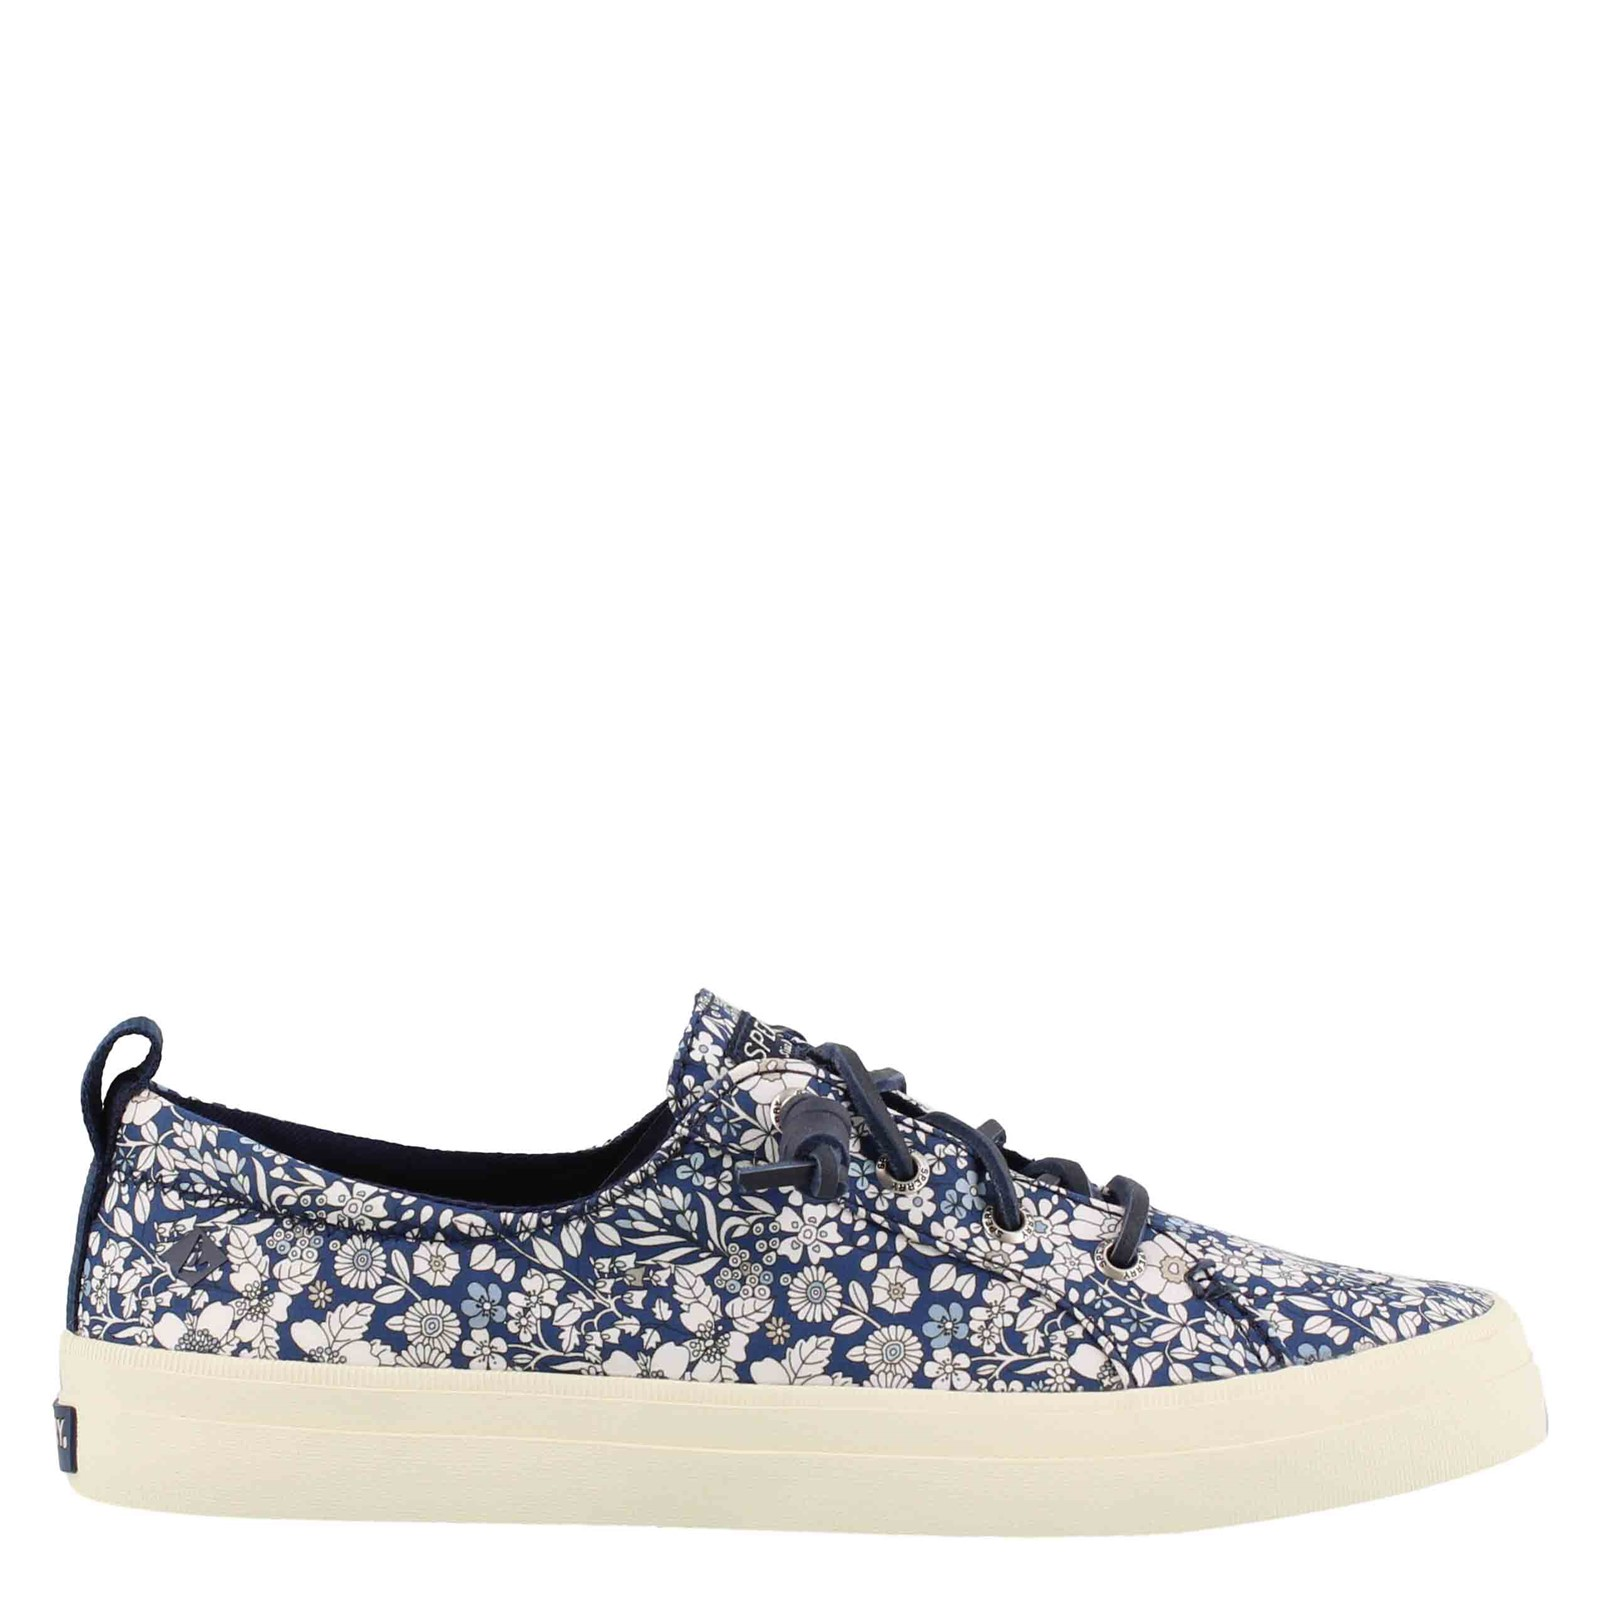 Women's Sperry, Crest Vibe Liberty Fabric Sneaker